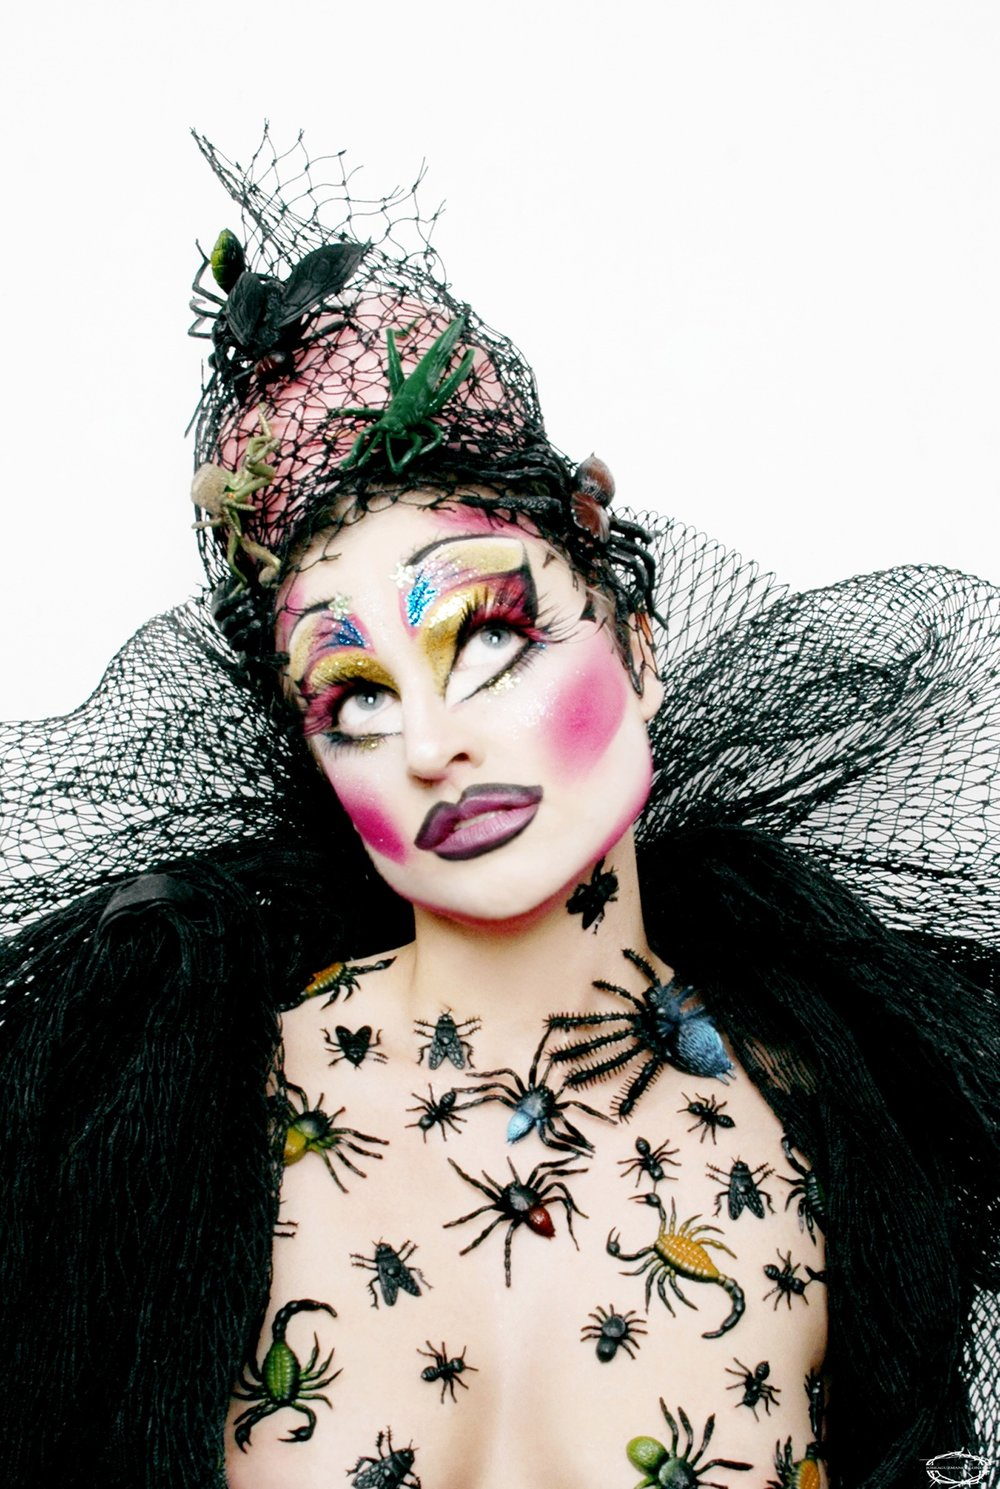 Kate Richards   (Makeup Designer) is a glamour and gore makeup artist, frequent traveler, and sporadic drag performer.